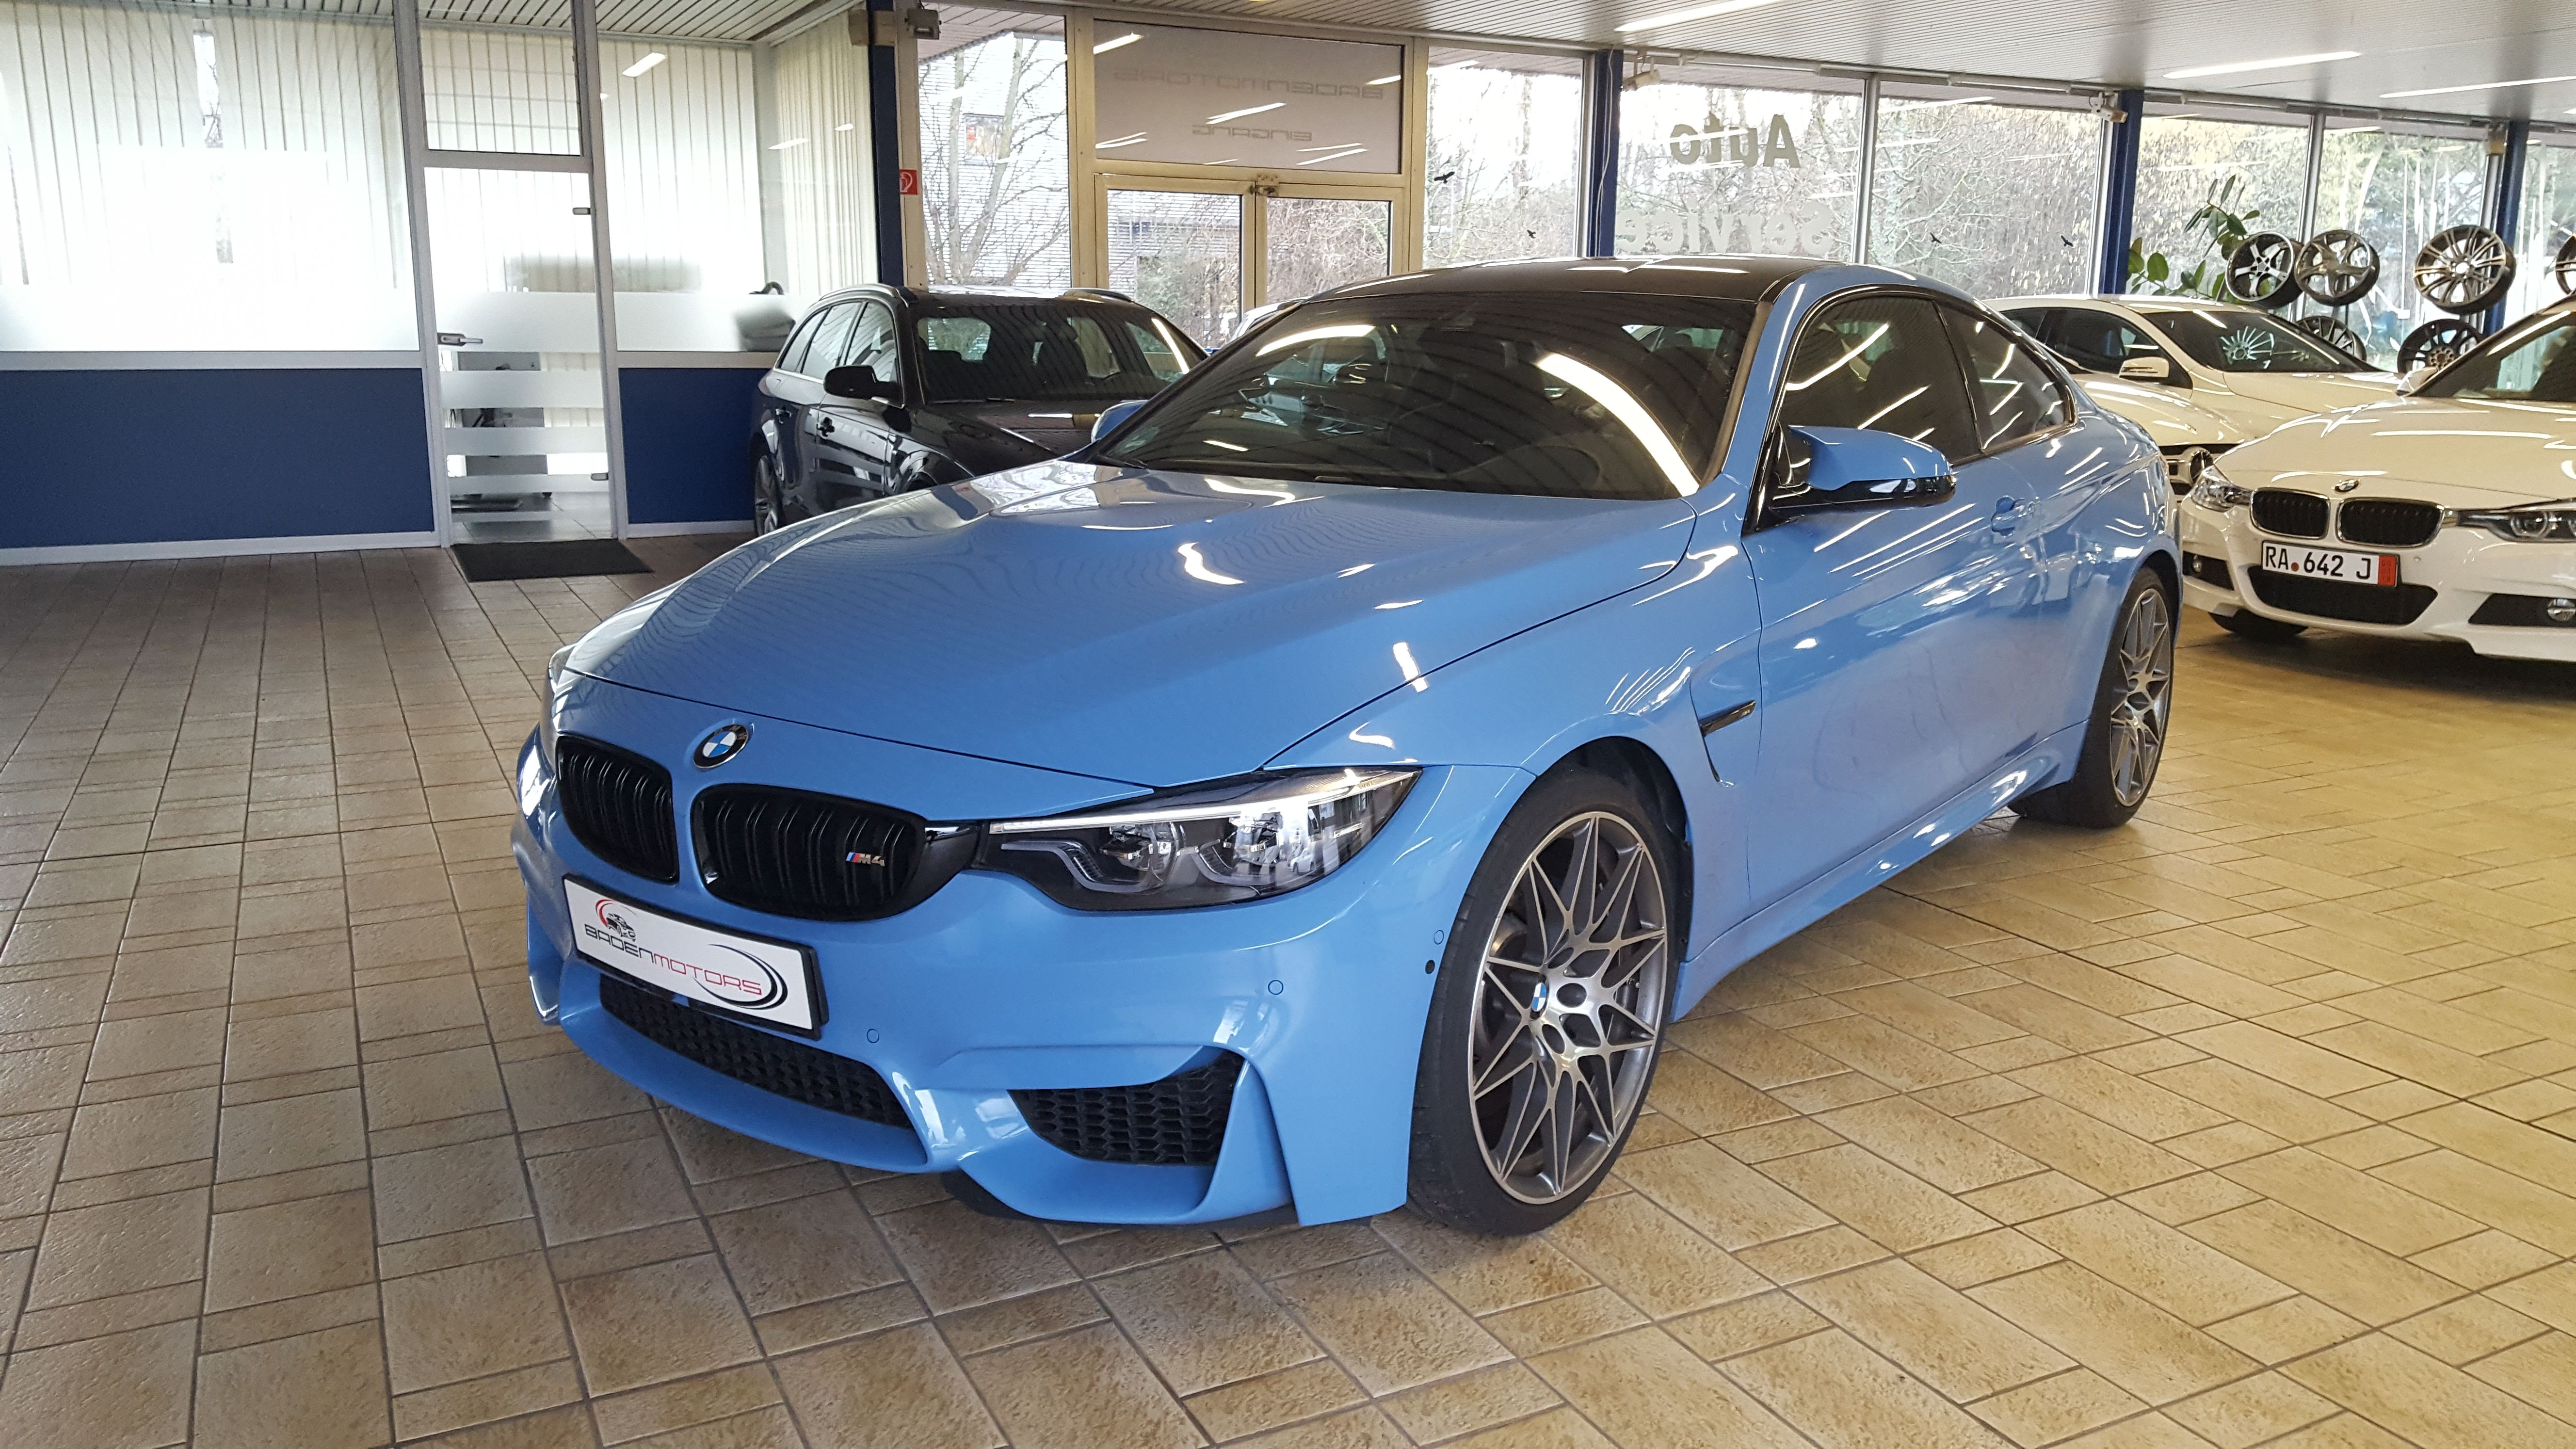 Bmw M4 M Compeion Package The 3 0 Liter Twin Turbo In